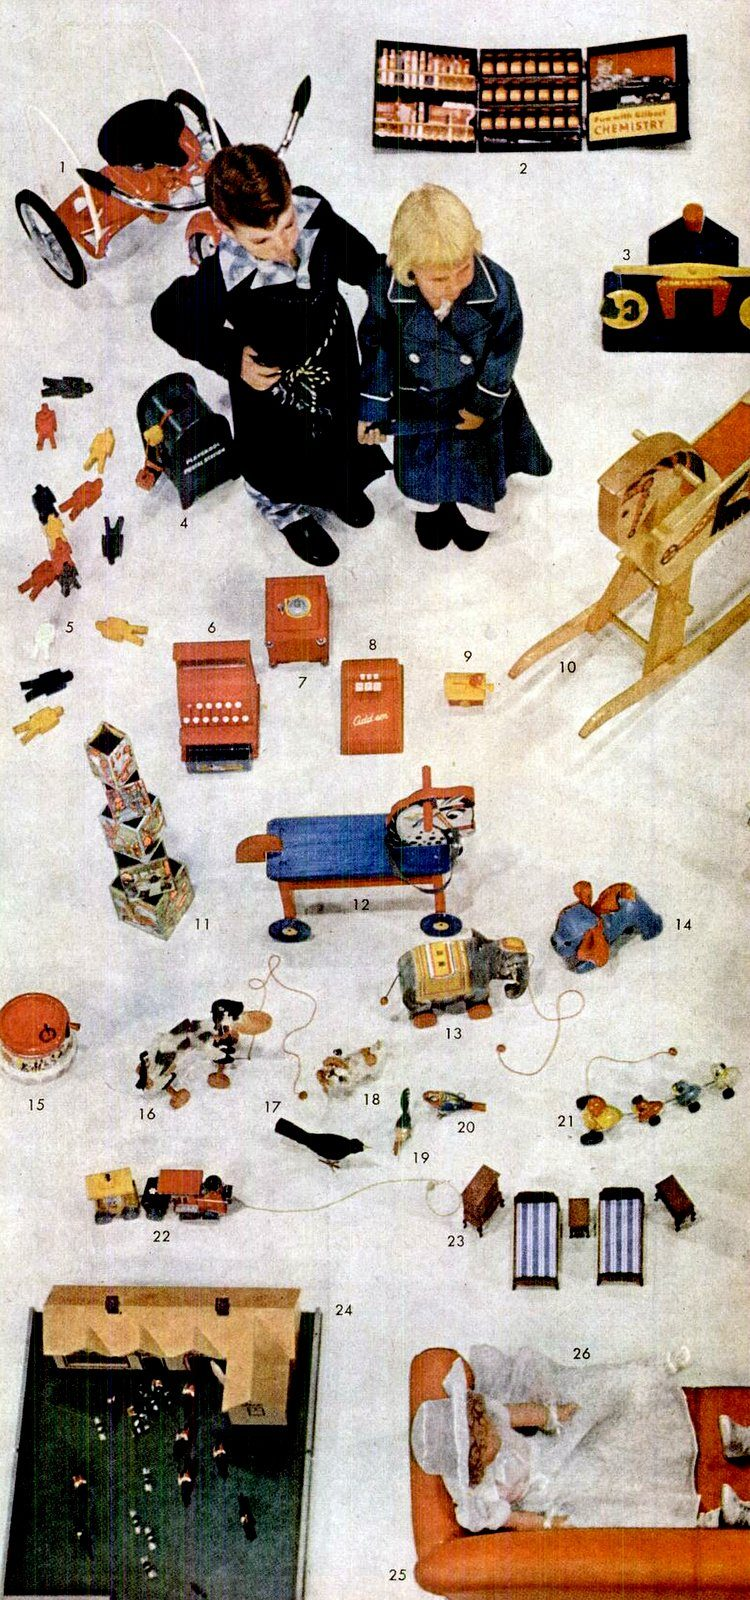 Play time! Check out some of the most popular toys from the '40s (2)